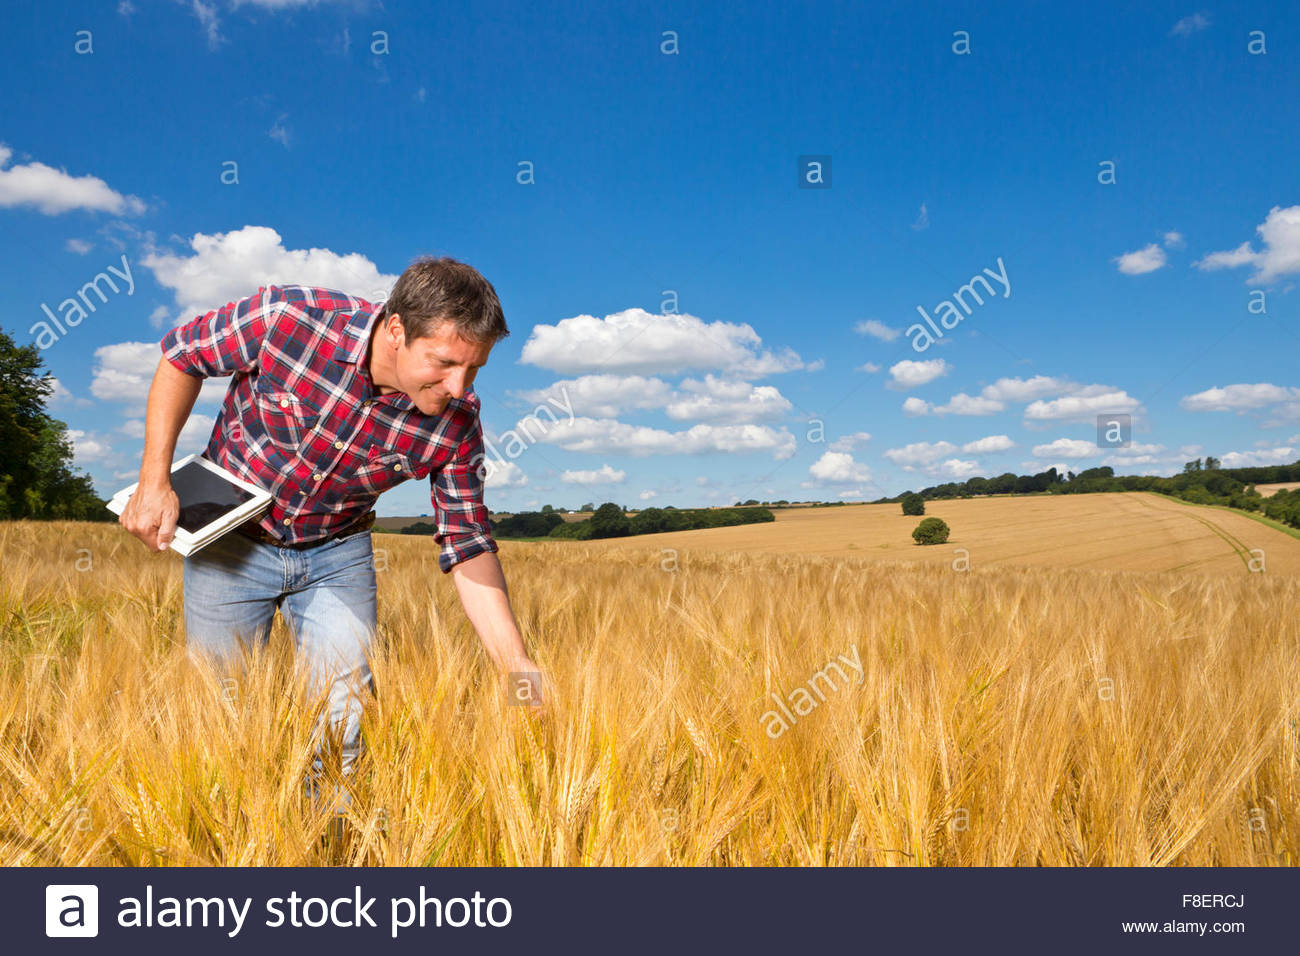 Farmer with digital tablet bending to examine sunny rural barley crop field in summer - Stock Image